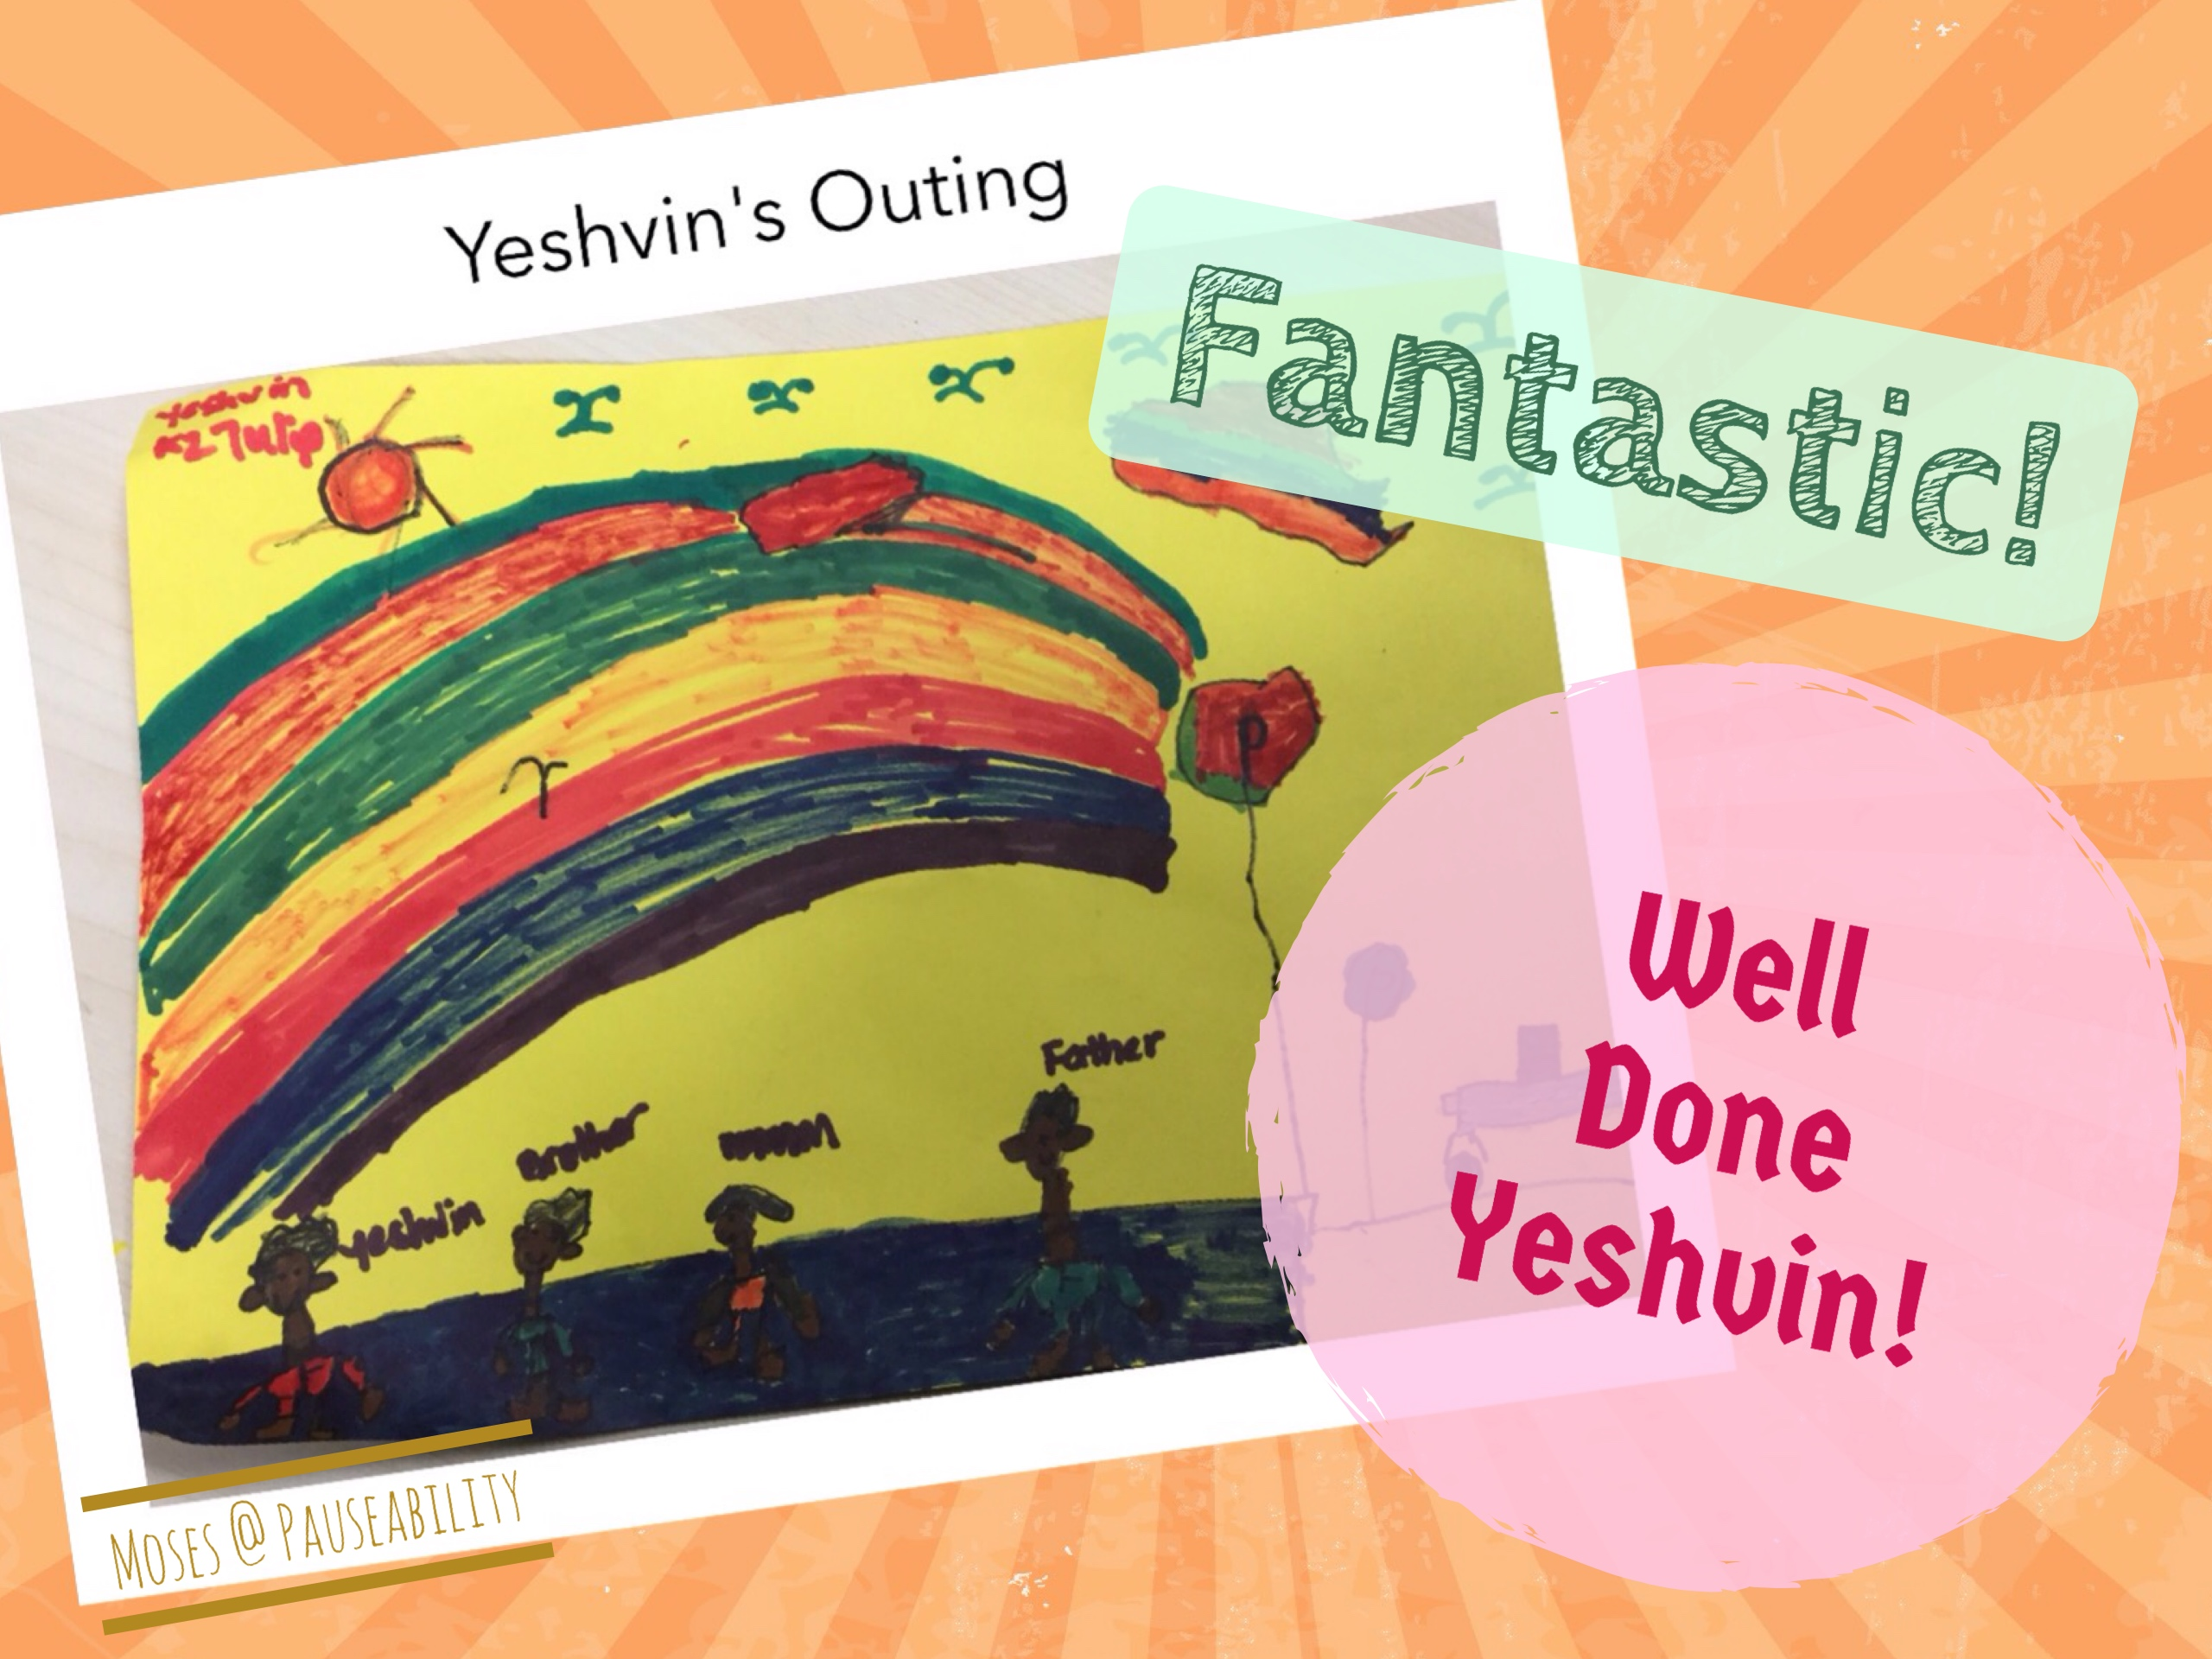 Yeshvin's Outing